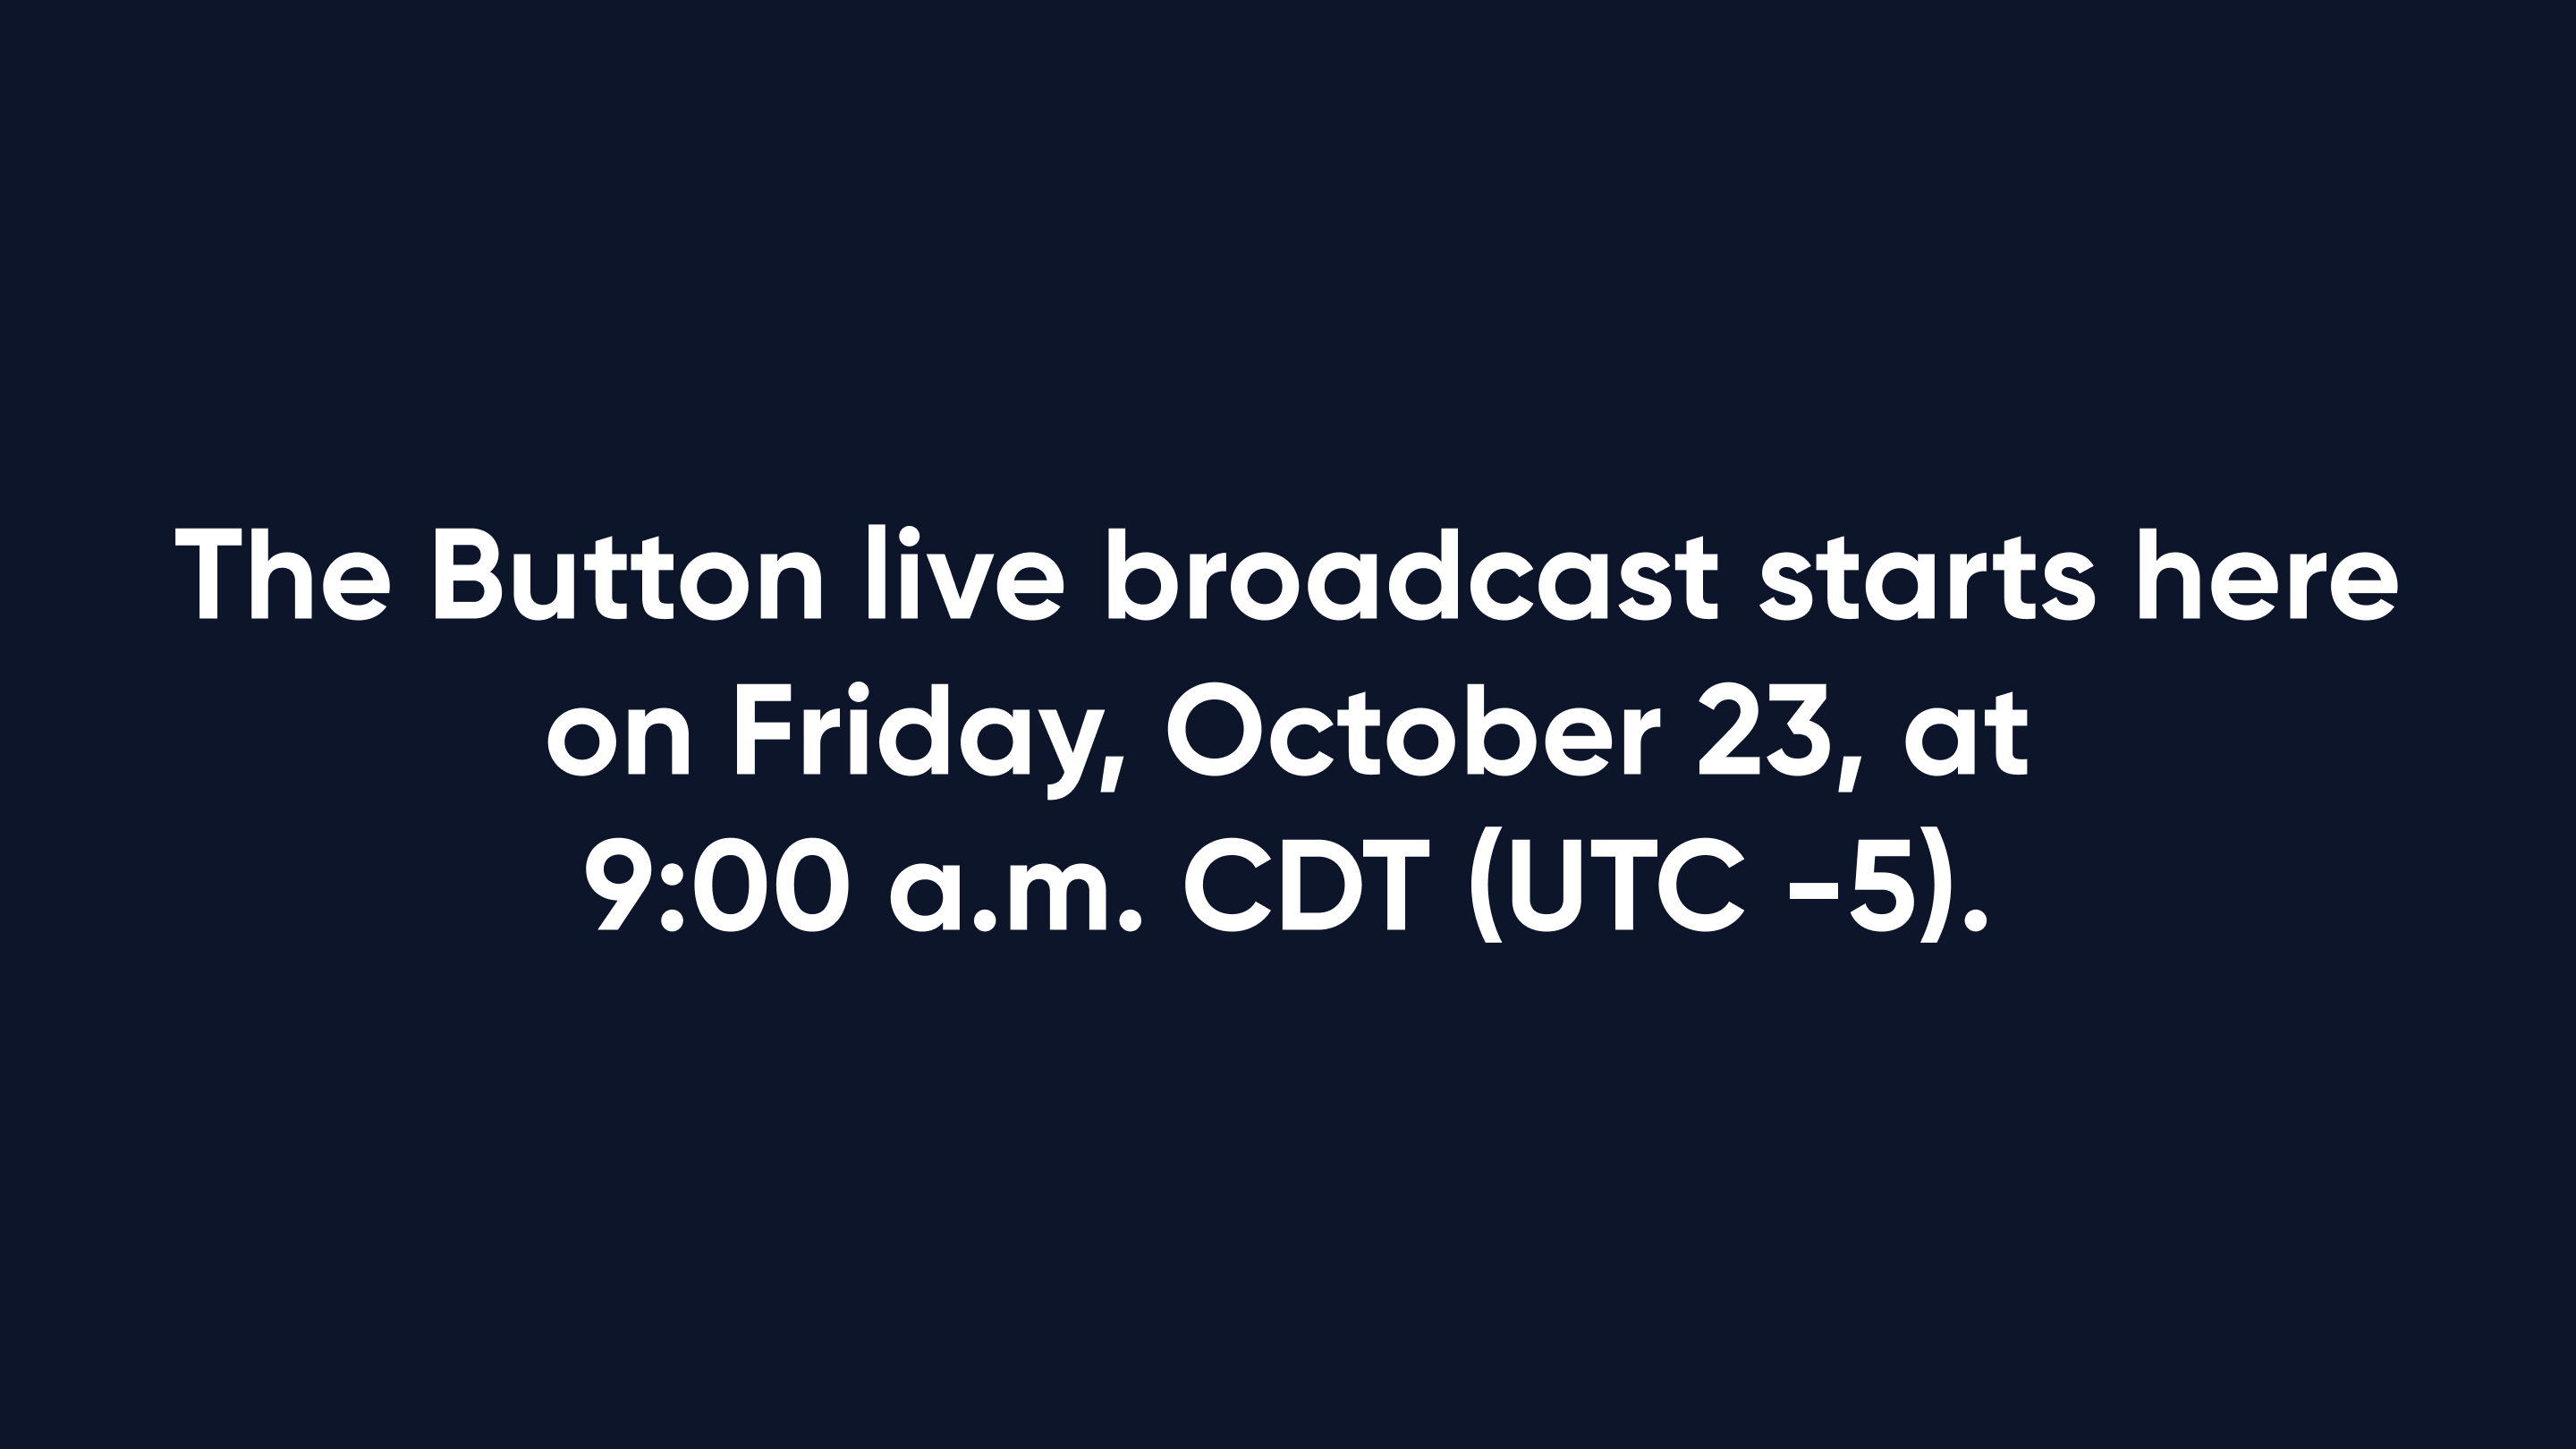 The Button live broadcast starts here on Friday, October 23, at 9:00 a.m. CDT (UTC -5).